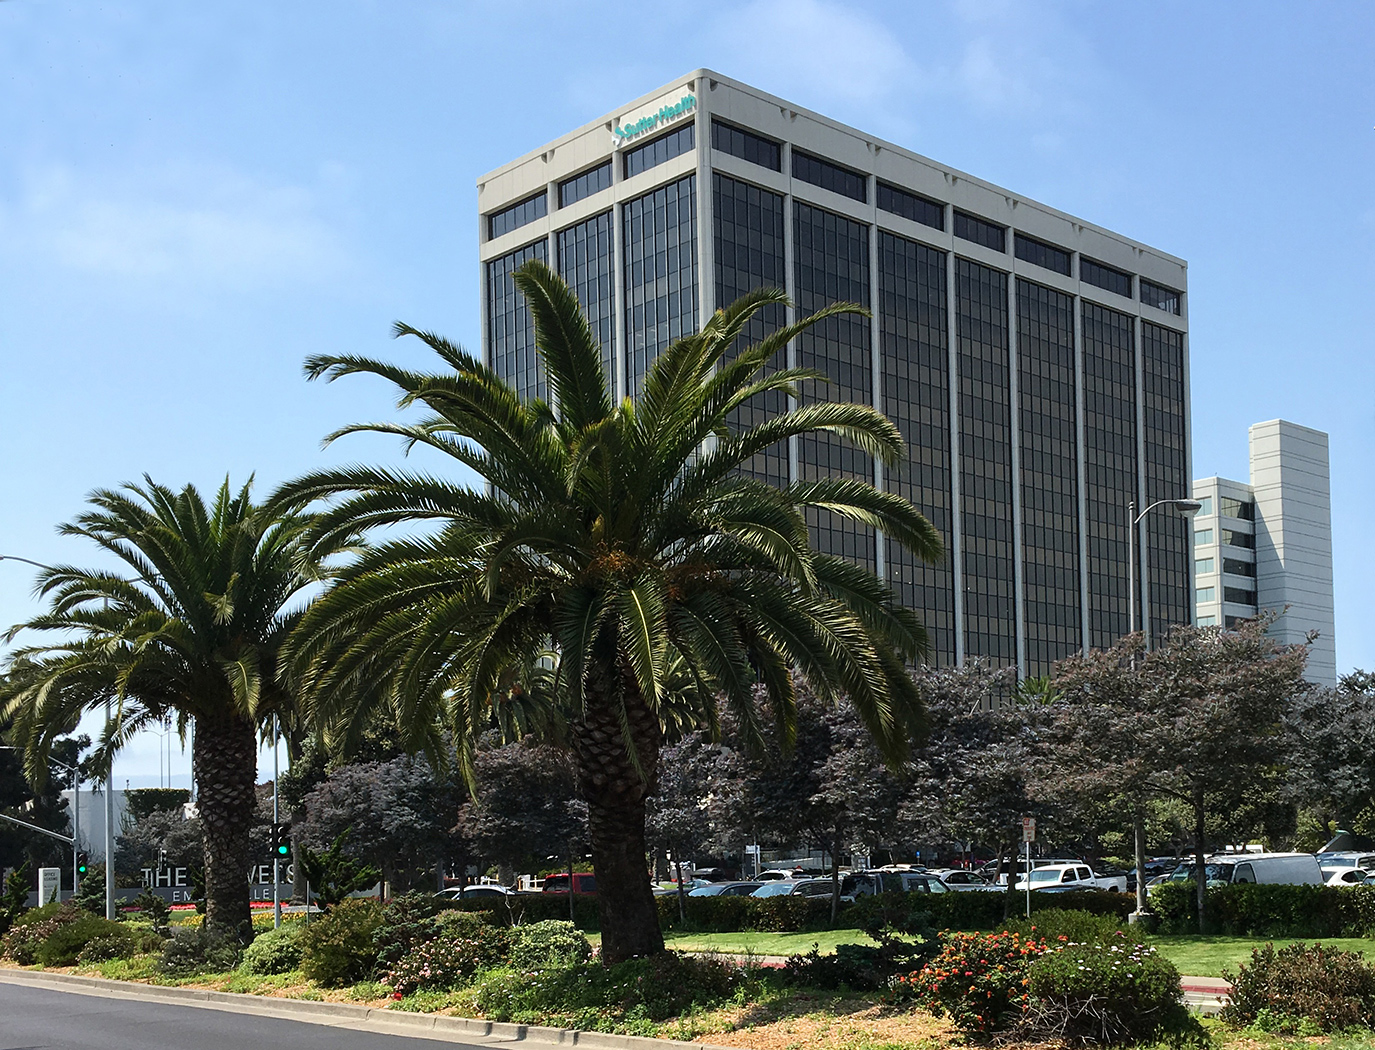 Pacific Law Partners Emeryville office location